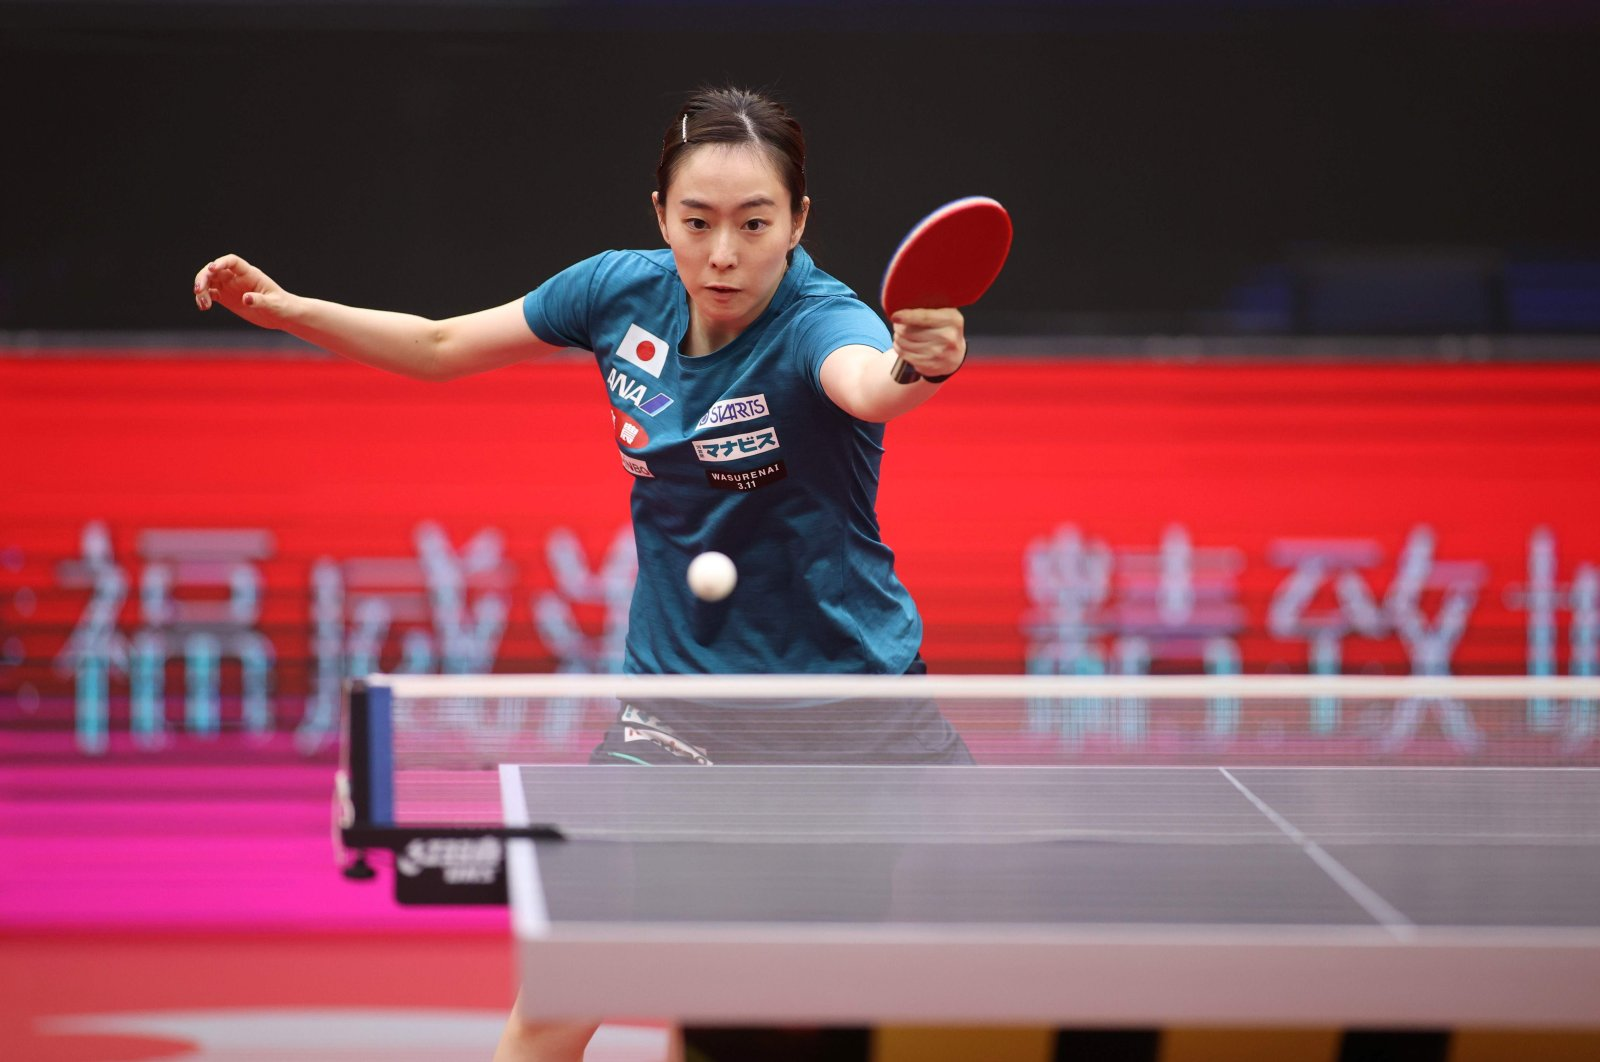 Kasumi Ishikawa of Japan during a training session ahead of the Women's World Cup table tennis competition. in Weihai, China, Nov. 7, 2020. (AFP Photo)